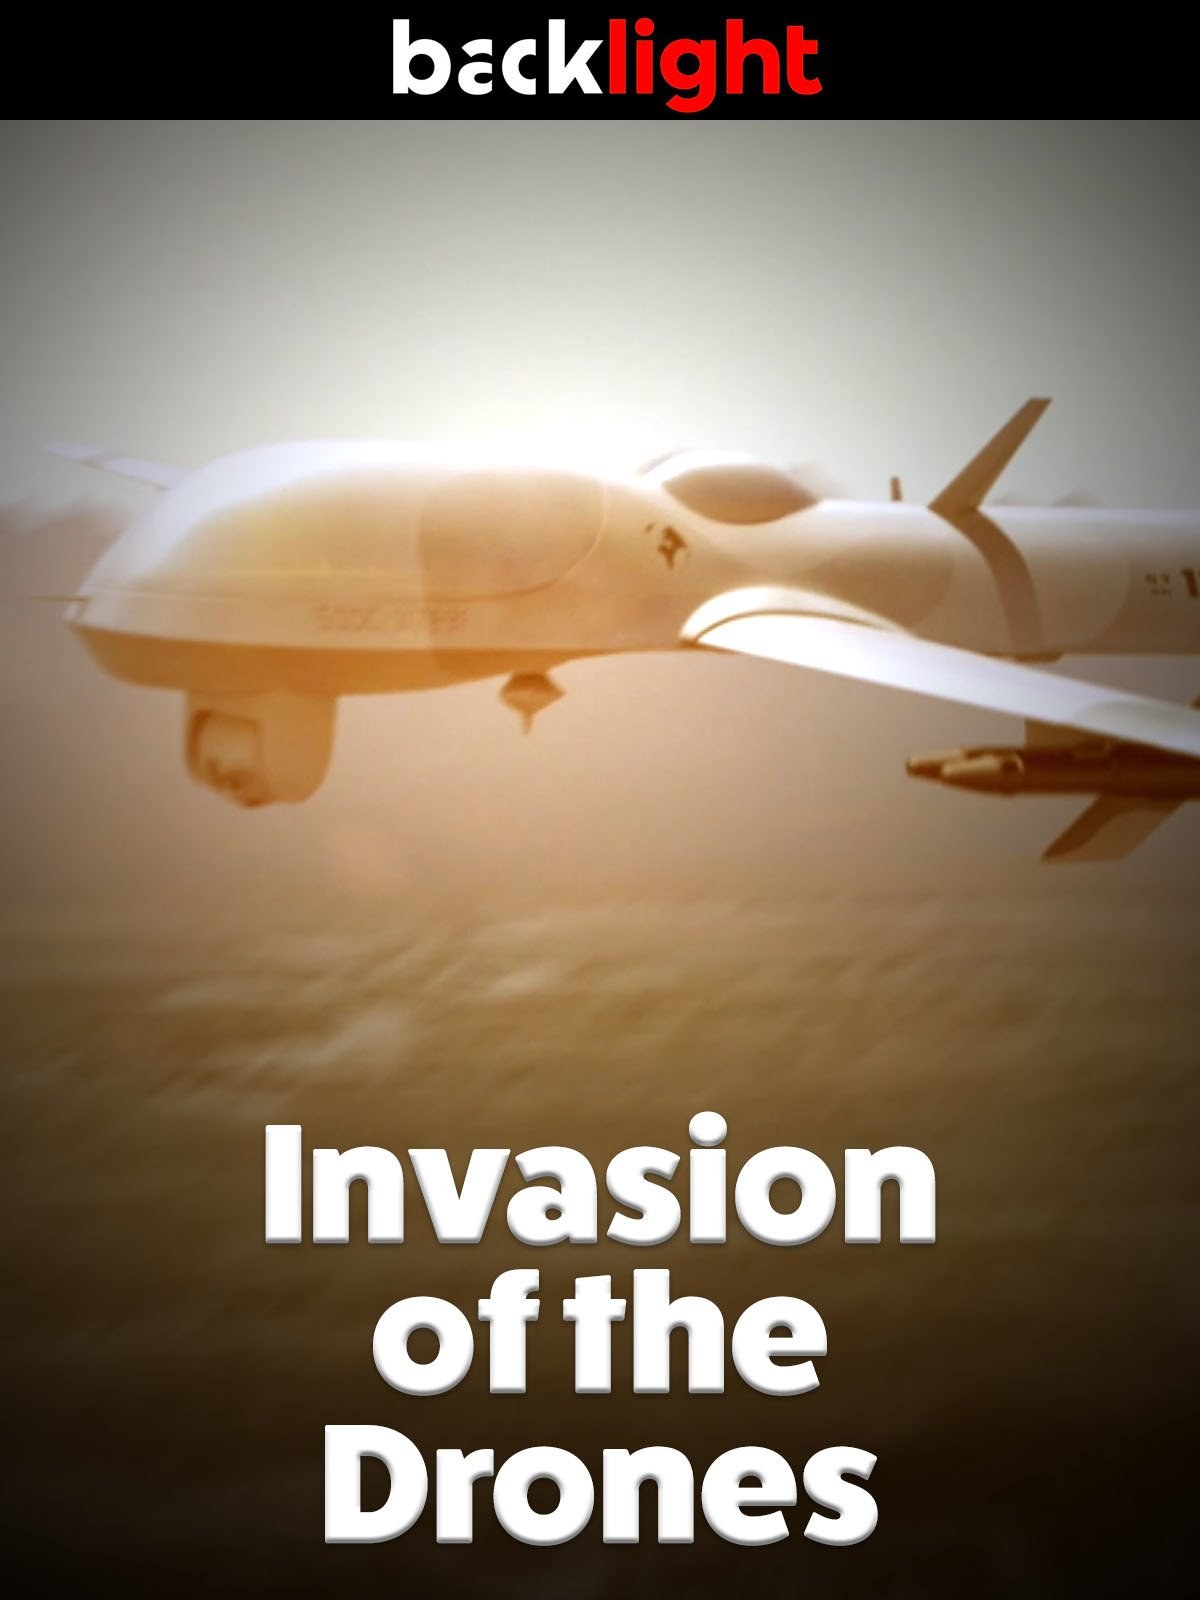 Backlight: Invasion of the Drones